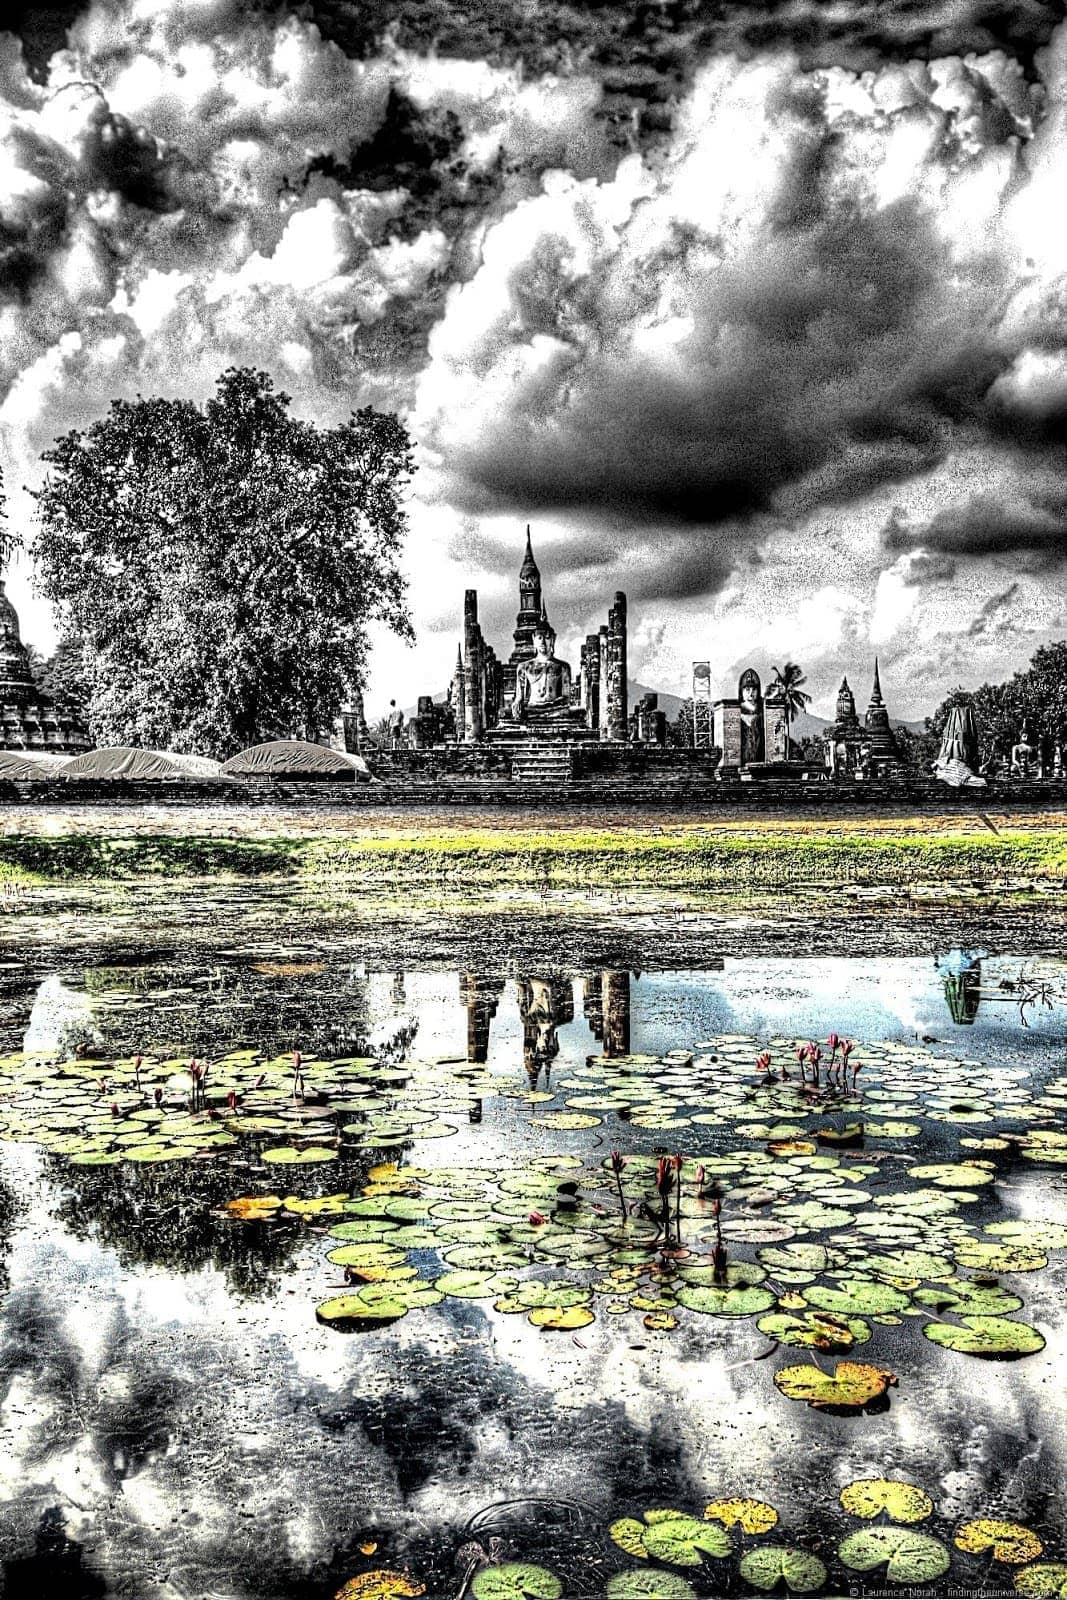 Wat reflection pond